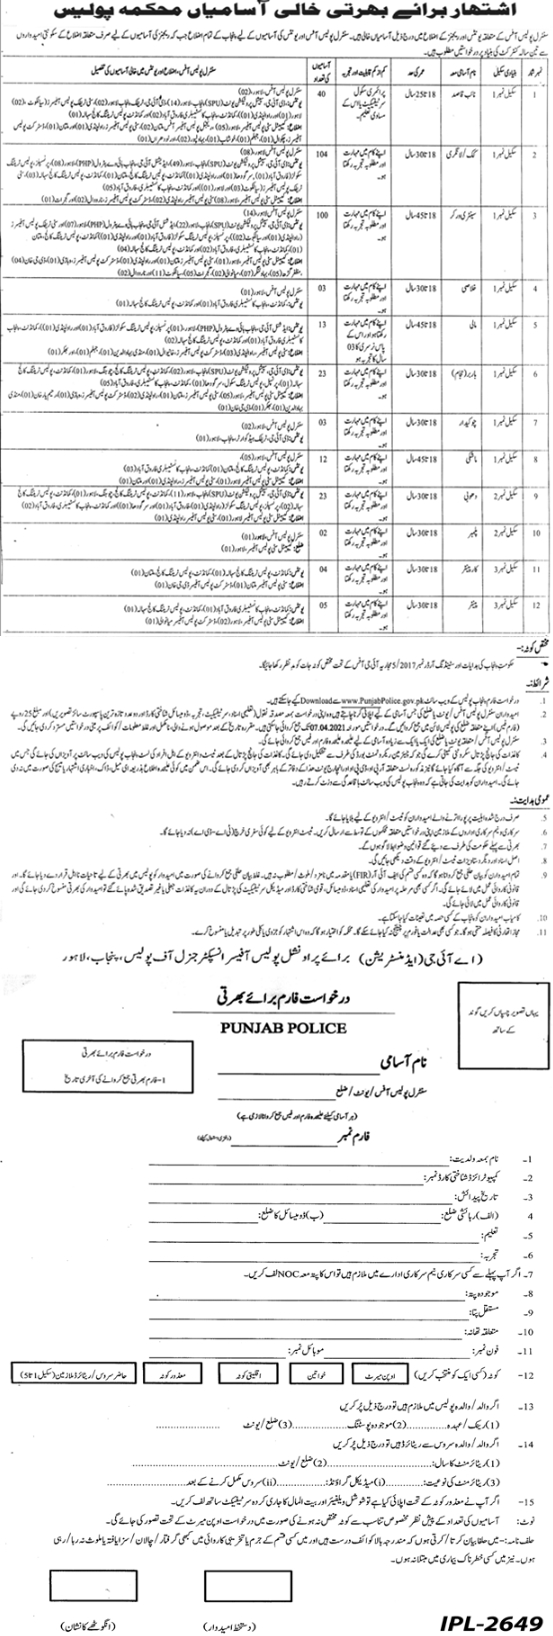 Punjab Police Jobs 2021 (Civilian Posts) Form Download, Test Result & Merit List